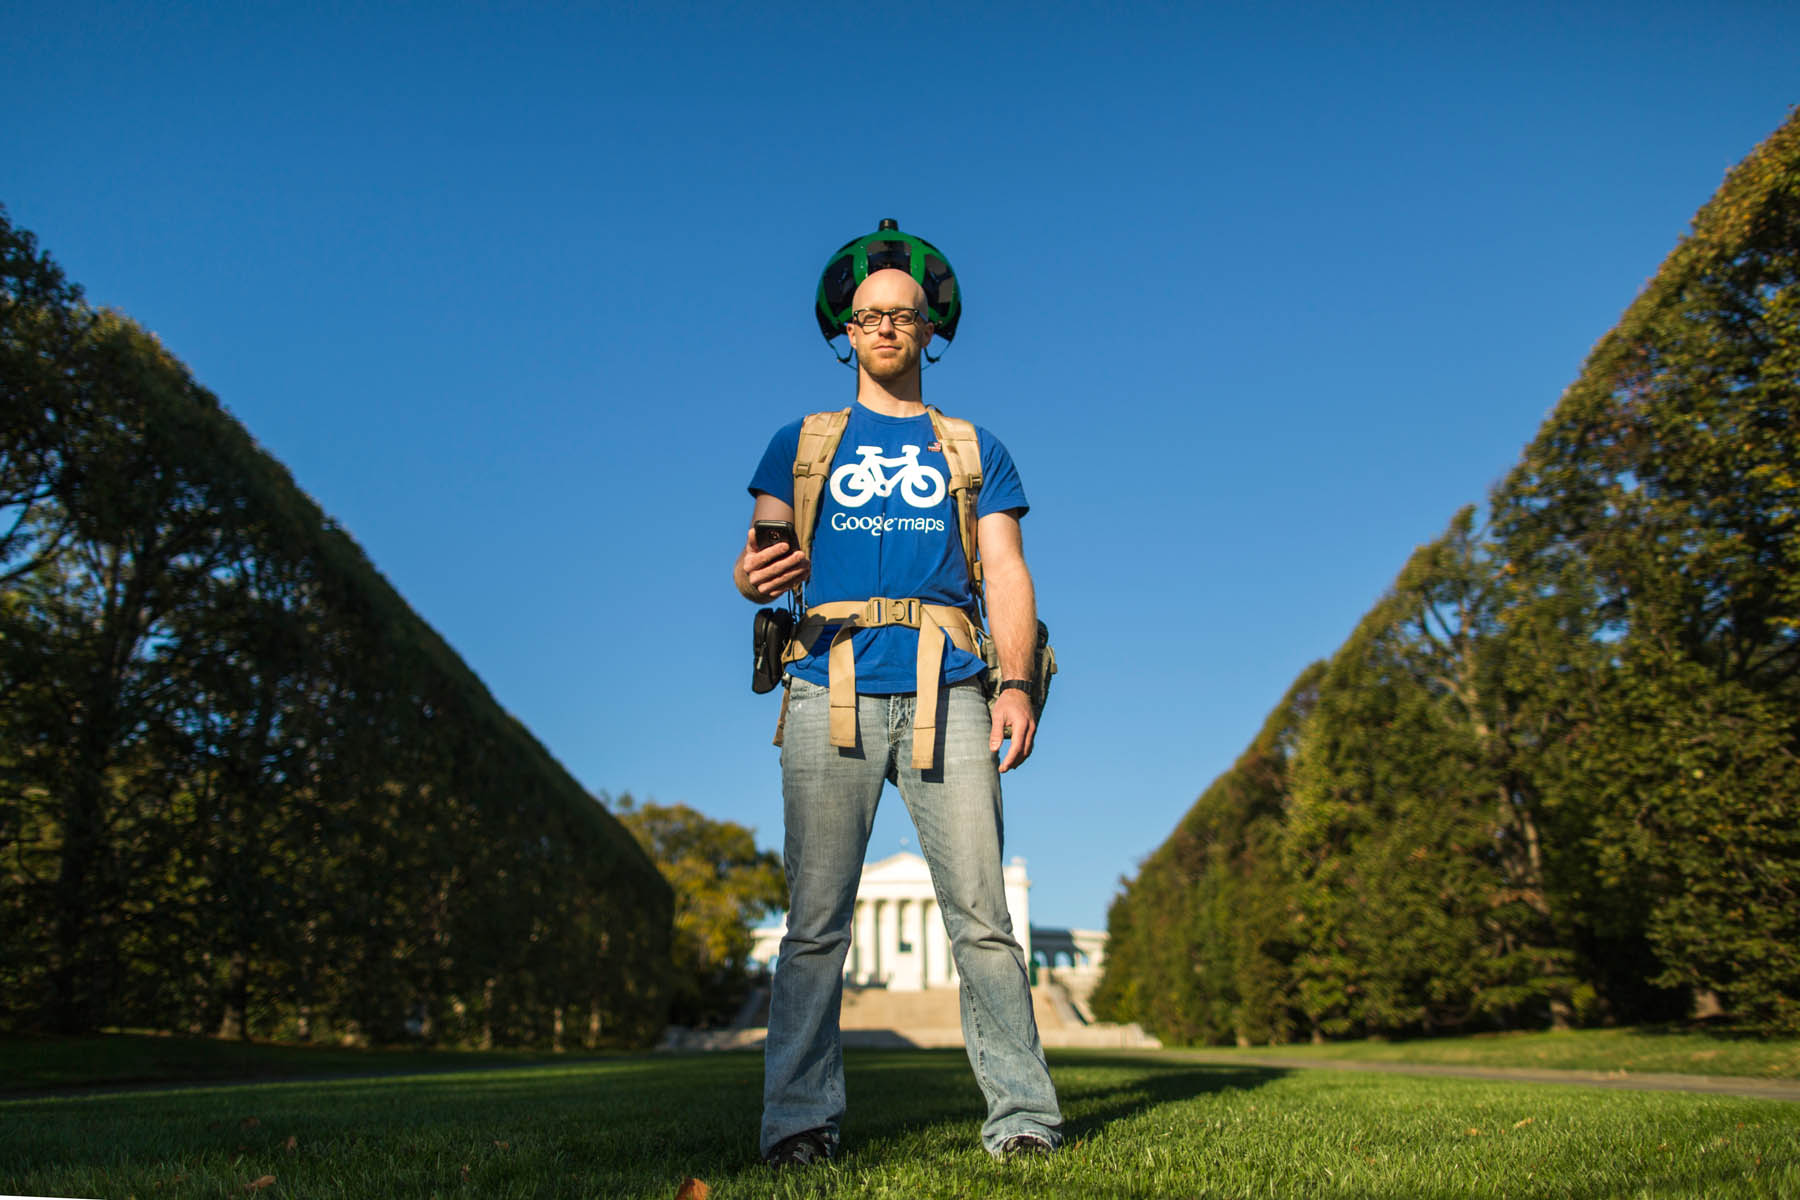 A Google employee walks thru Arlington National Cemetery with the Street View capture device known as the Trekker,  a wearable backpack system that has 15 cameras.  Each lens in the Trekker backpack points in a different direction, so that when combined, all of the images can be stitched into 360-degree panoramic views.  Once Google is done mapping, which is planned for the cemetery's 2014 150th anniversary, armchair travelers can visit the iconic graveyard online,  and explore both panoramic and detailed views of the hollowed grounds.